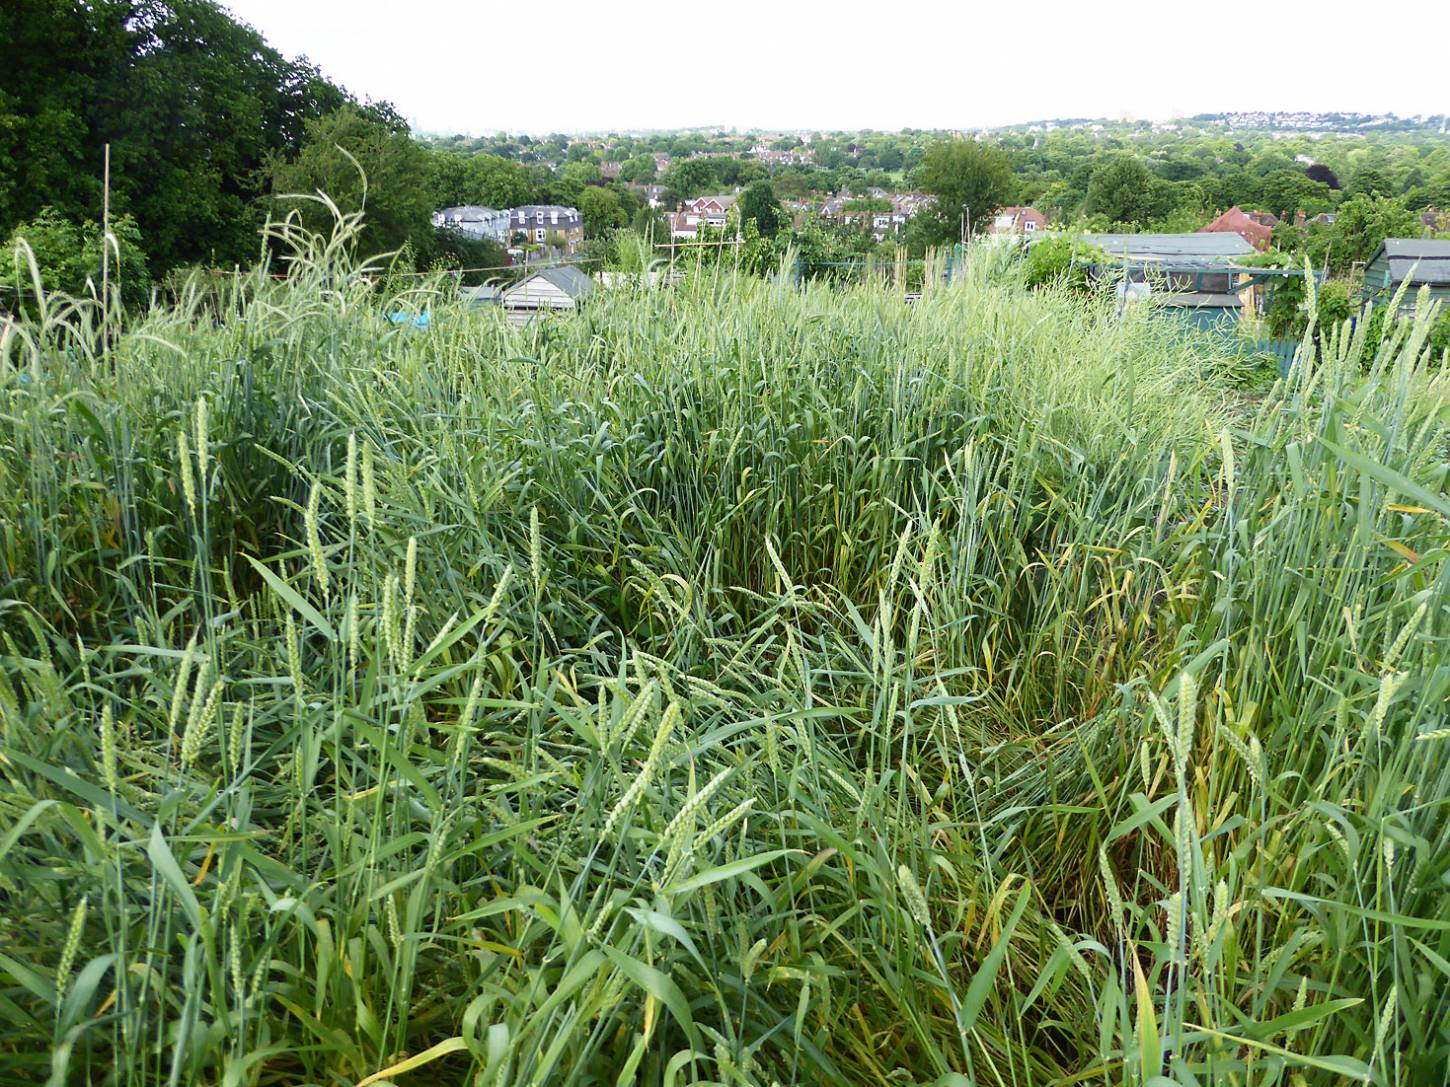 some lodging amongst Purple Naked Spelt, plot review late May/early June - 6:37pm&nbsp;3<sup>rd</sup>&nbsp;Jun.&nbsp;'17  <a href='http://maps.google.com/?t=h&q=51.444119,-0.101400&z=18&output=embed' target=_blank><img src='http://www.brockwell-bake.org.uk/img/marker.png' style='border:none;vertical-align:top' height=16px></a>